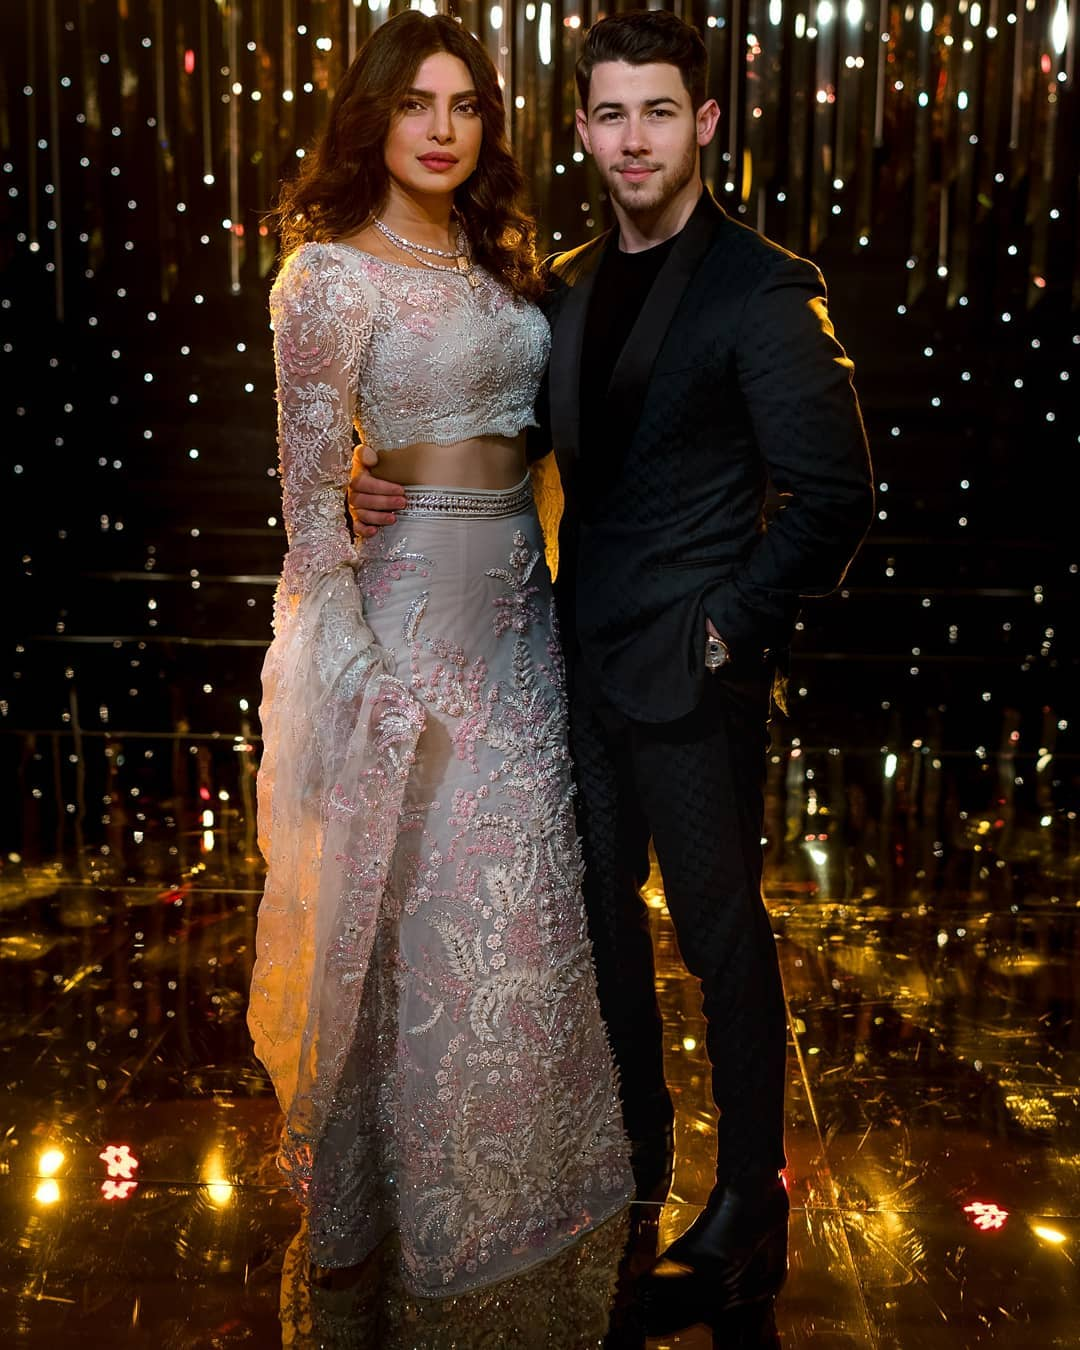 Priyanka Chopra, Nick Jonas, Priyanka Chopra Wedding, Nick Jonas Wedding, Nickyanka wedding, Nickyanka Bollywood reception, wedding reception, Priyanka Chopra reception, bridal wear, bridal outfit, reception outfit ideas, groom wear, wedding photography, celebrity wedding, Bollywood wedding, Hollywood wedding, couple portrait, open hairstyle, bridal hairstyle, bridal lehenga, Abu Jani Sandeep Khosla, Indian Groom, bridal inspiration, 2018 bollywood bride, ideas for reception